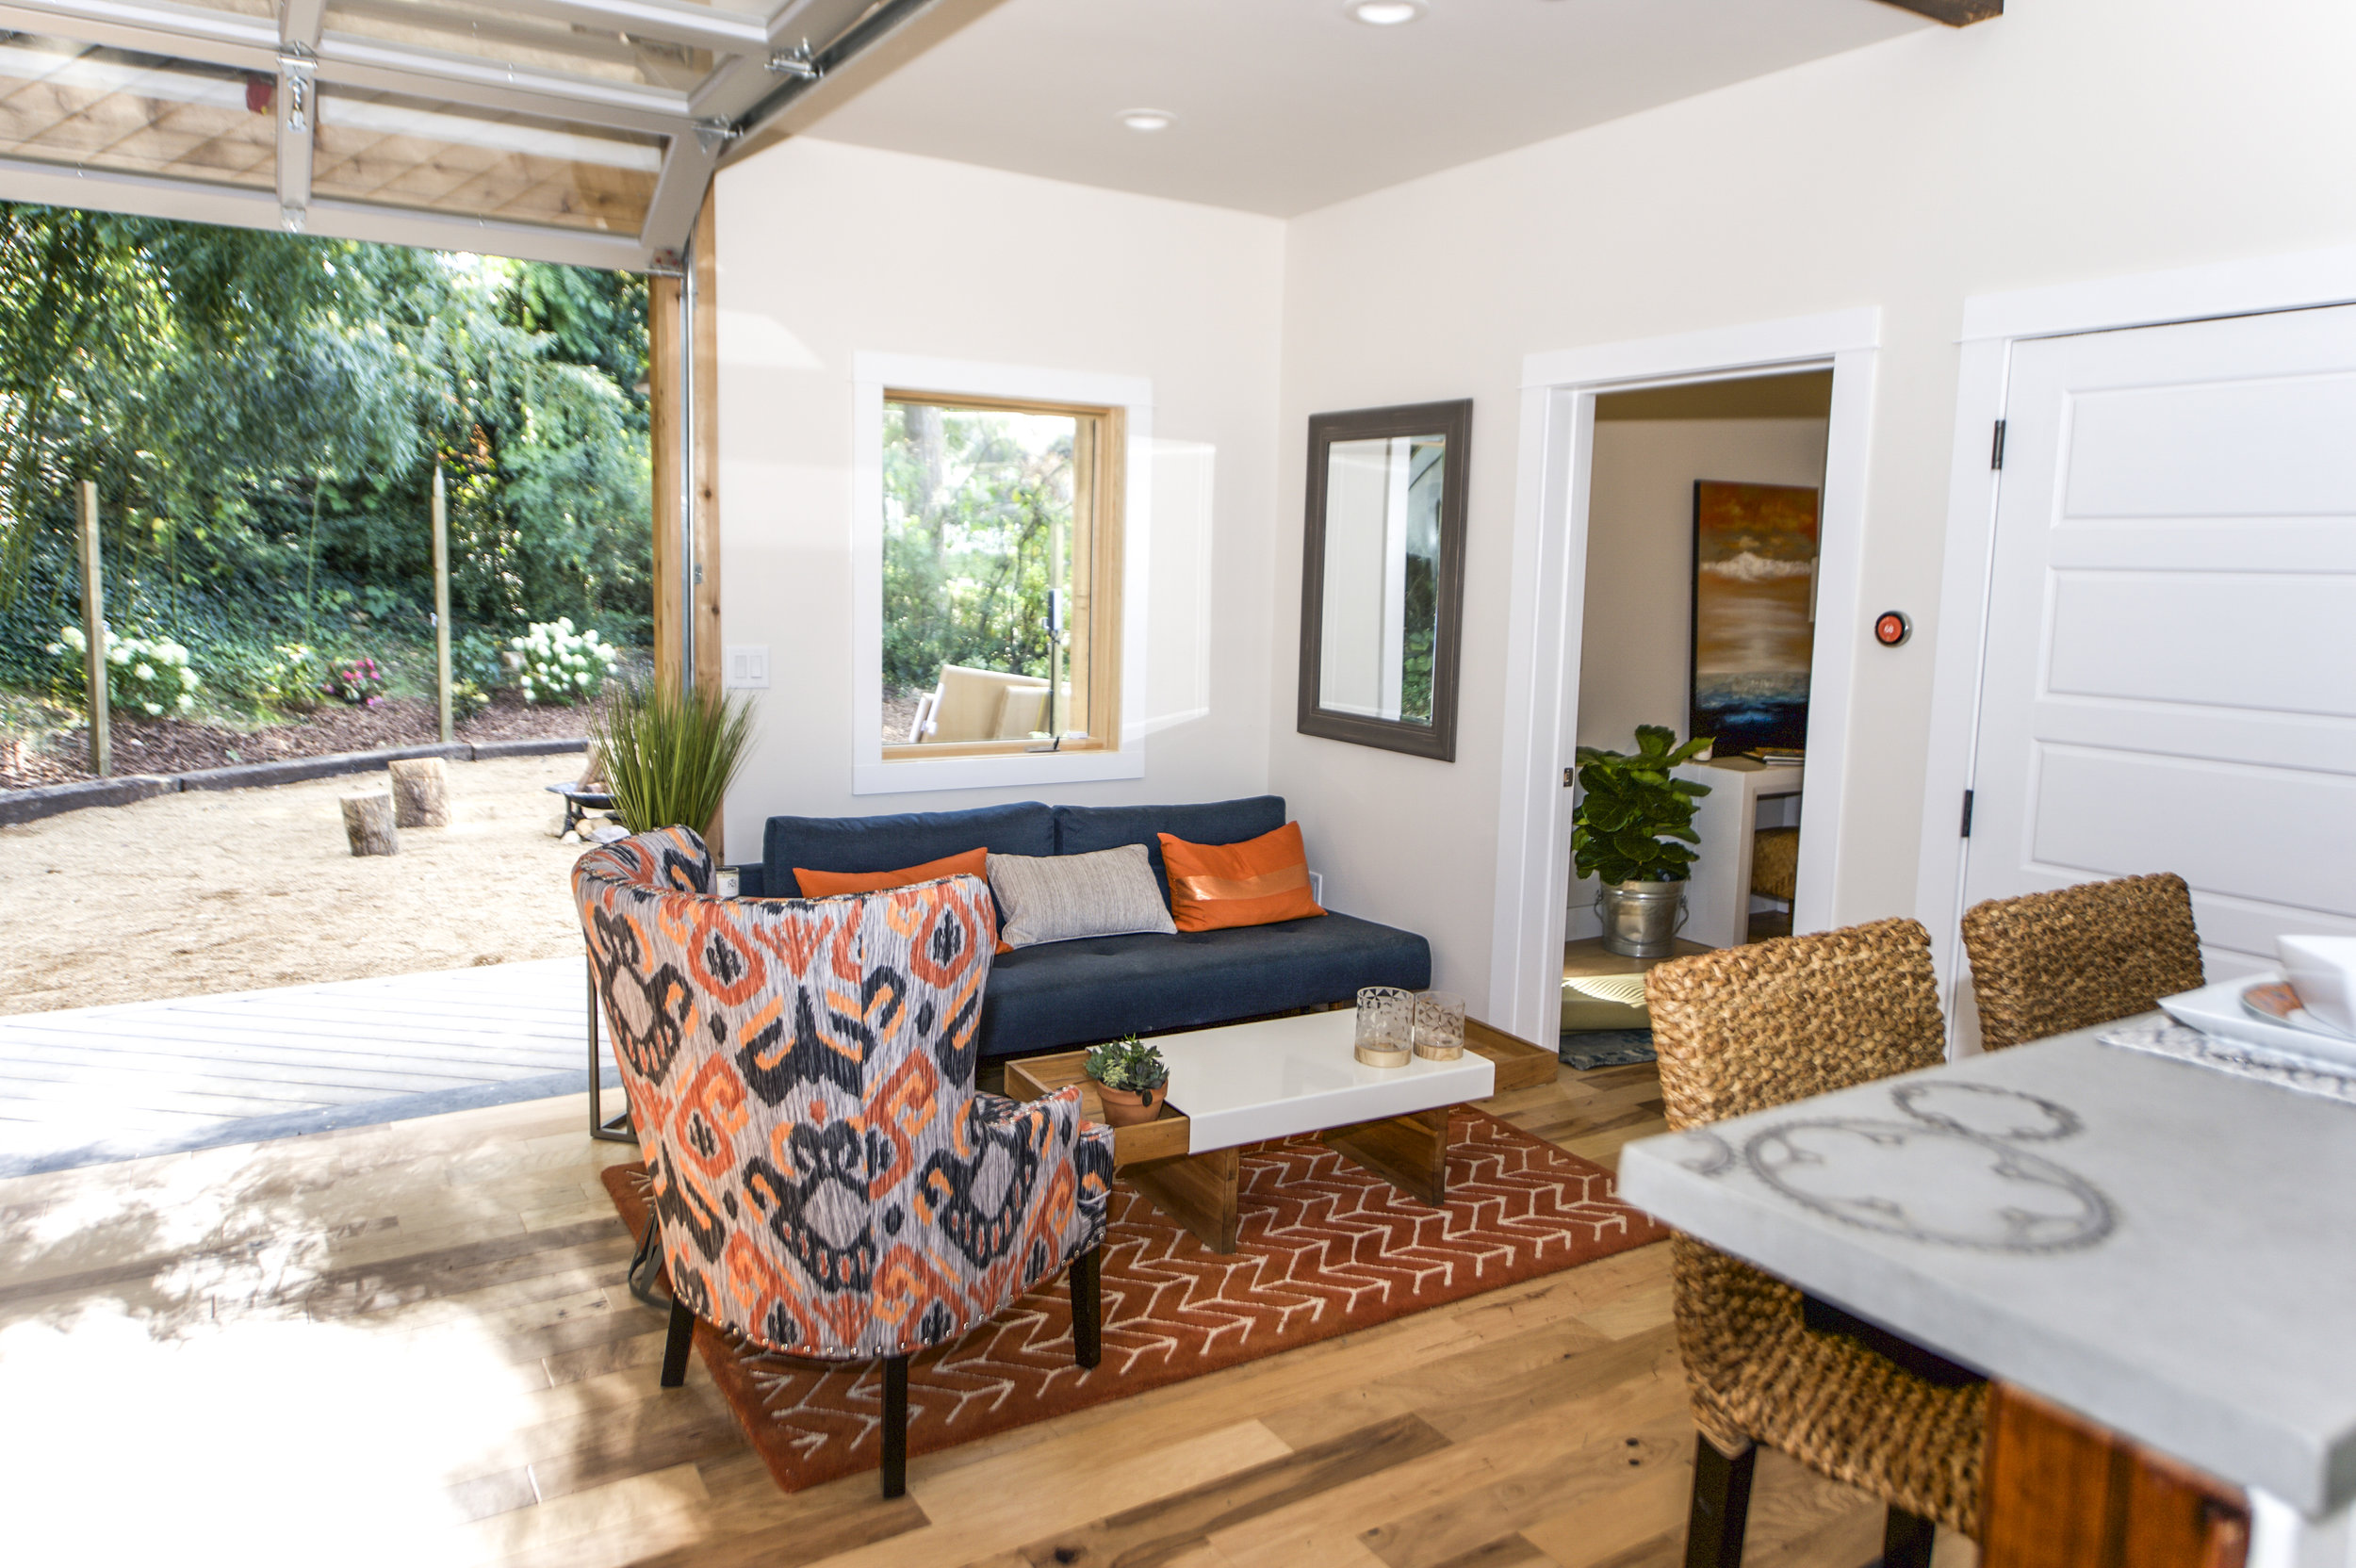 Urban Micro Home by Wind River Tiny Homes - glass garage door by Chattanooga Garage Door, concrete counters by Set In Stone, inlaid bike gears